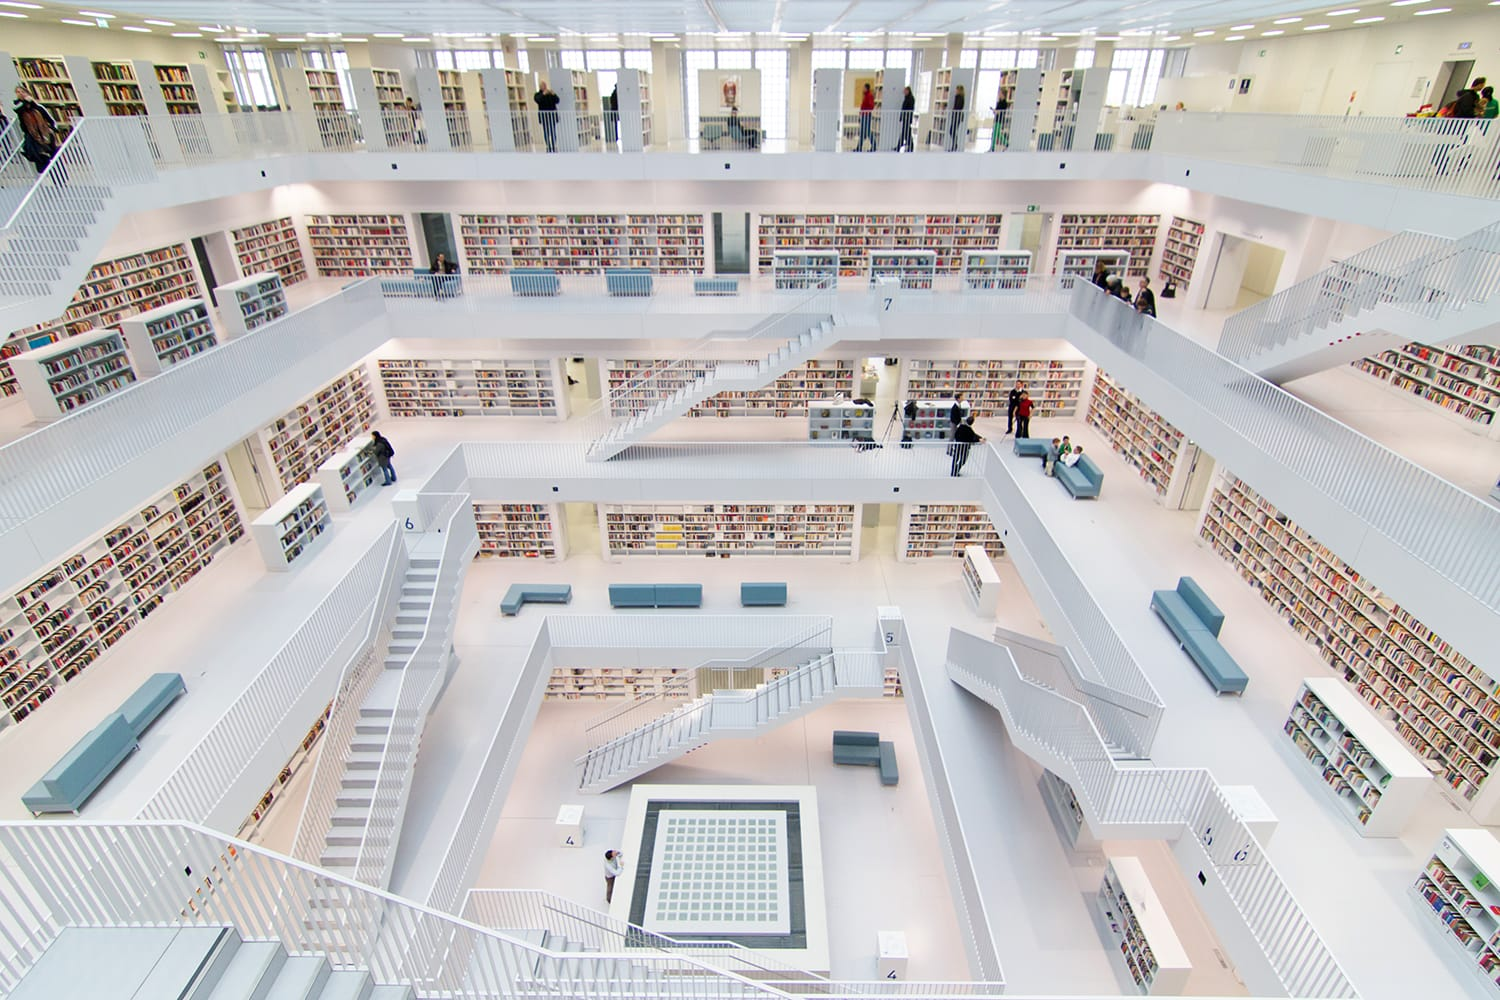 Interior of new public library in Stuttgart, Germany